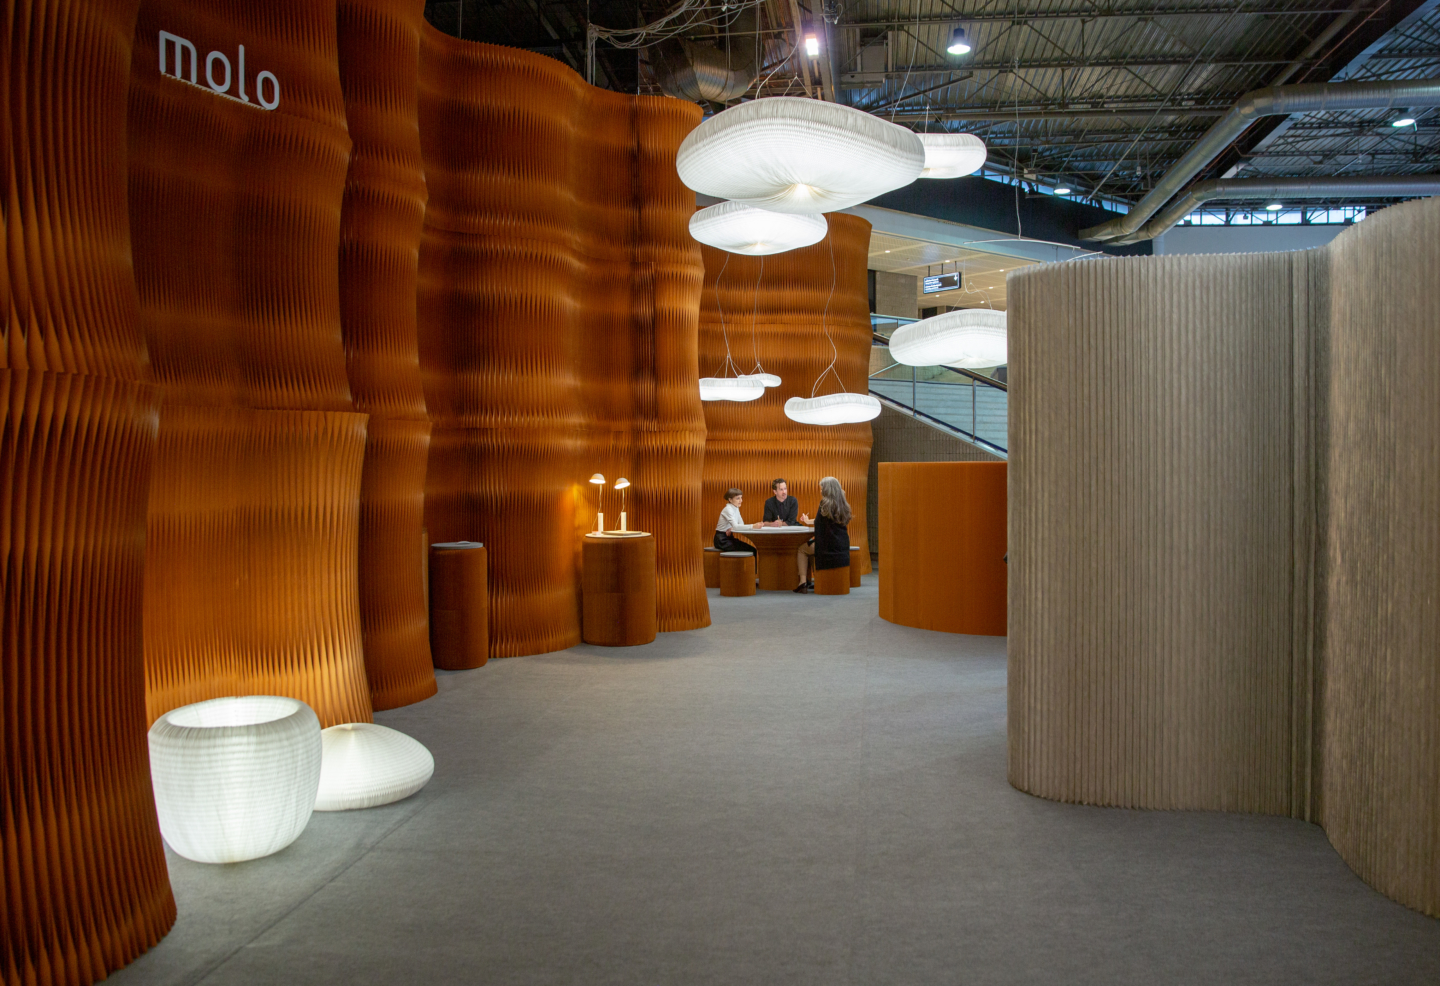 paper furniture lighting backdrop molo